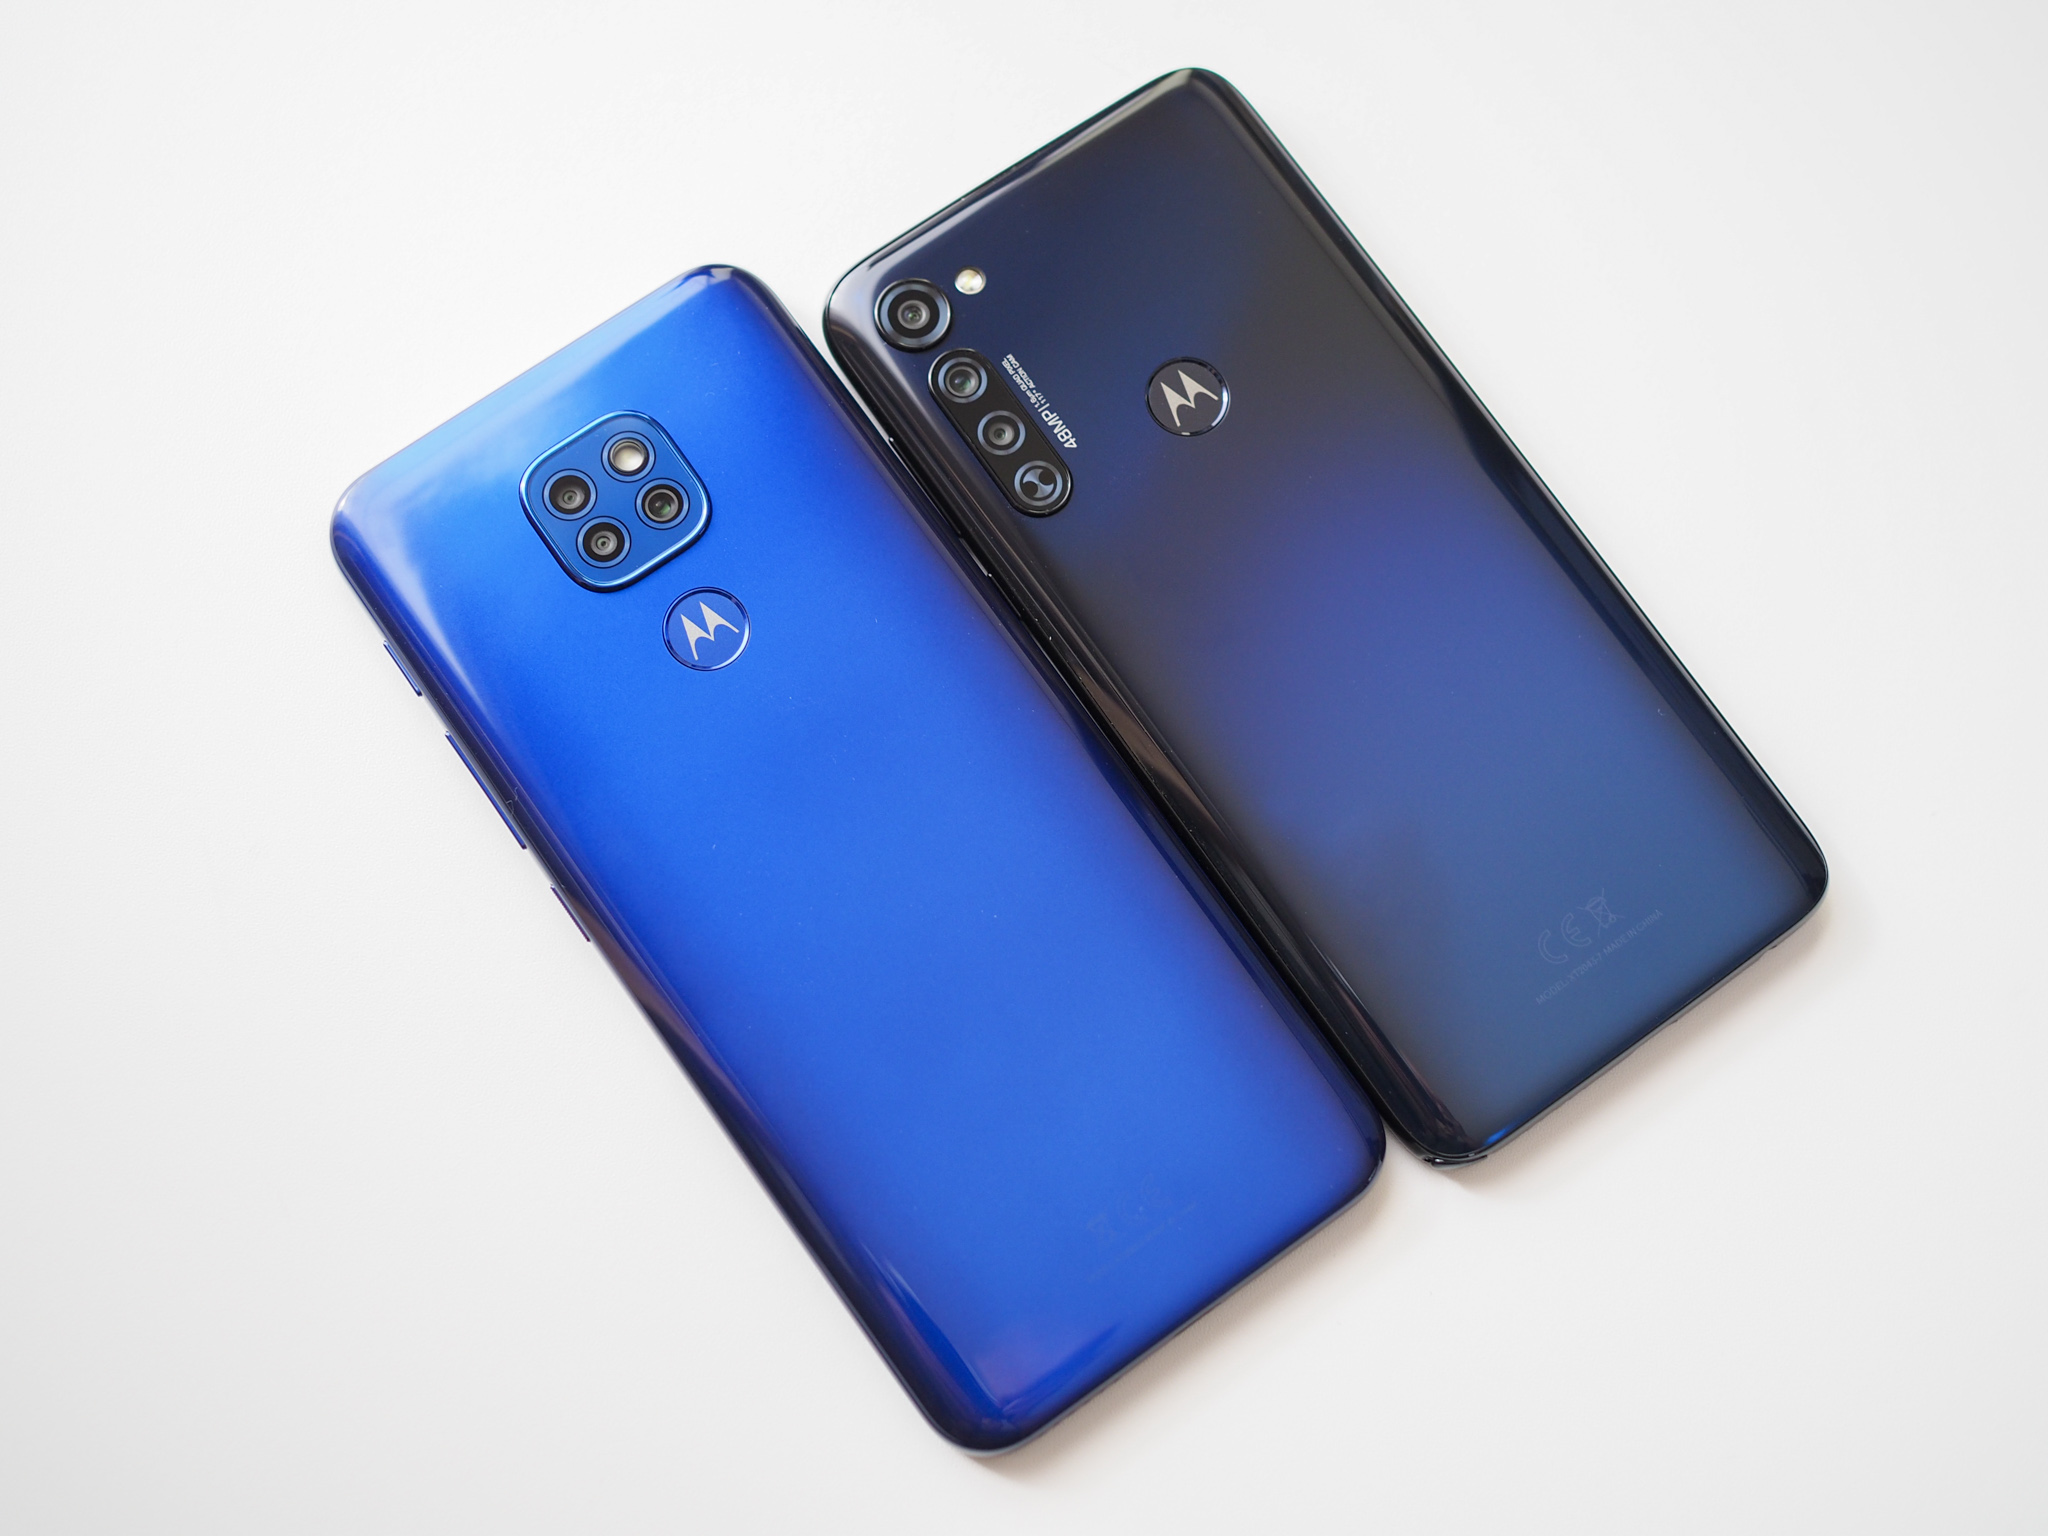 Motorola moto g9 Play and moto g PRO review: the new SIM free smartphones from the 20,000 yen range - Engadget 日本版